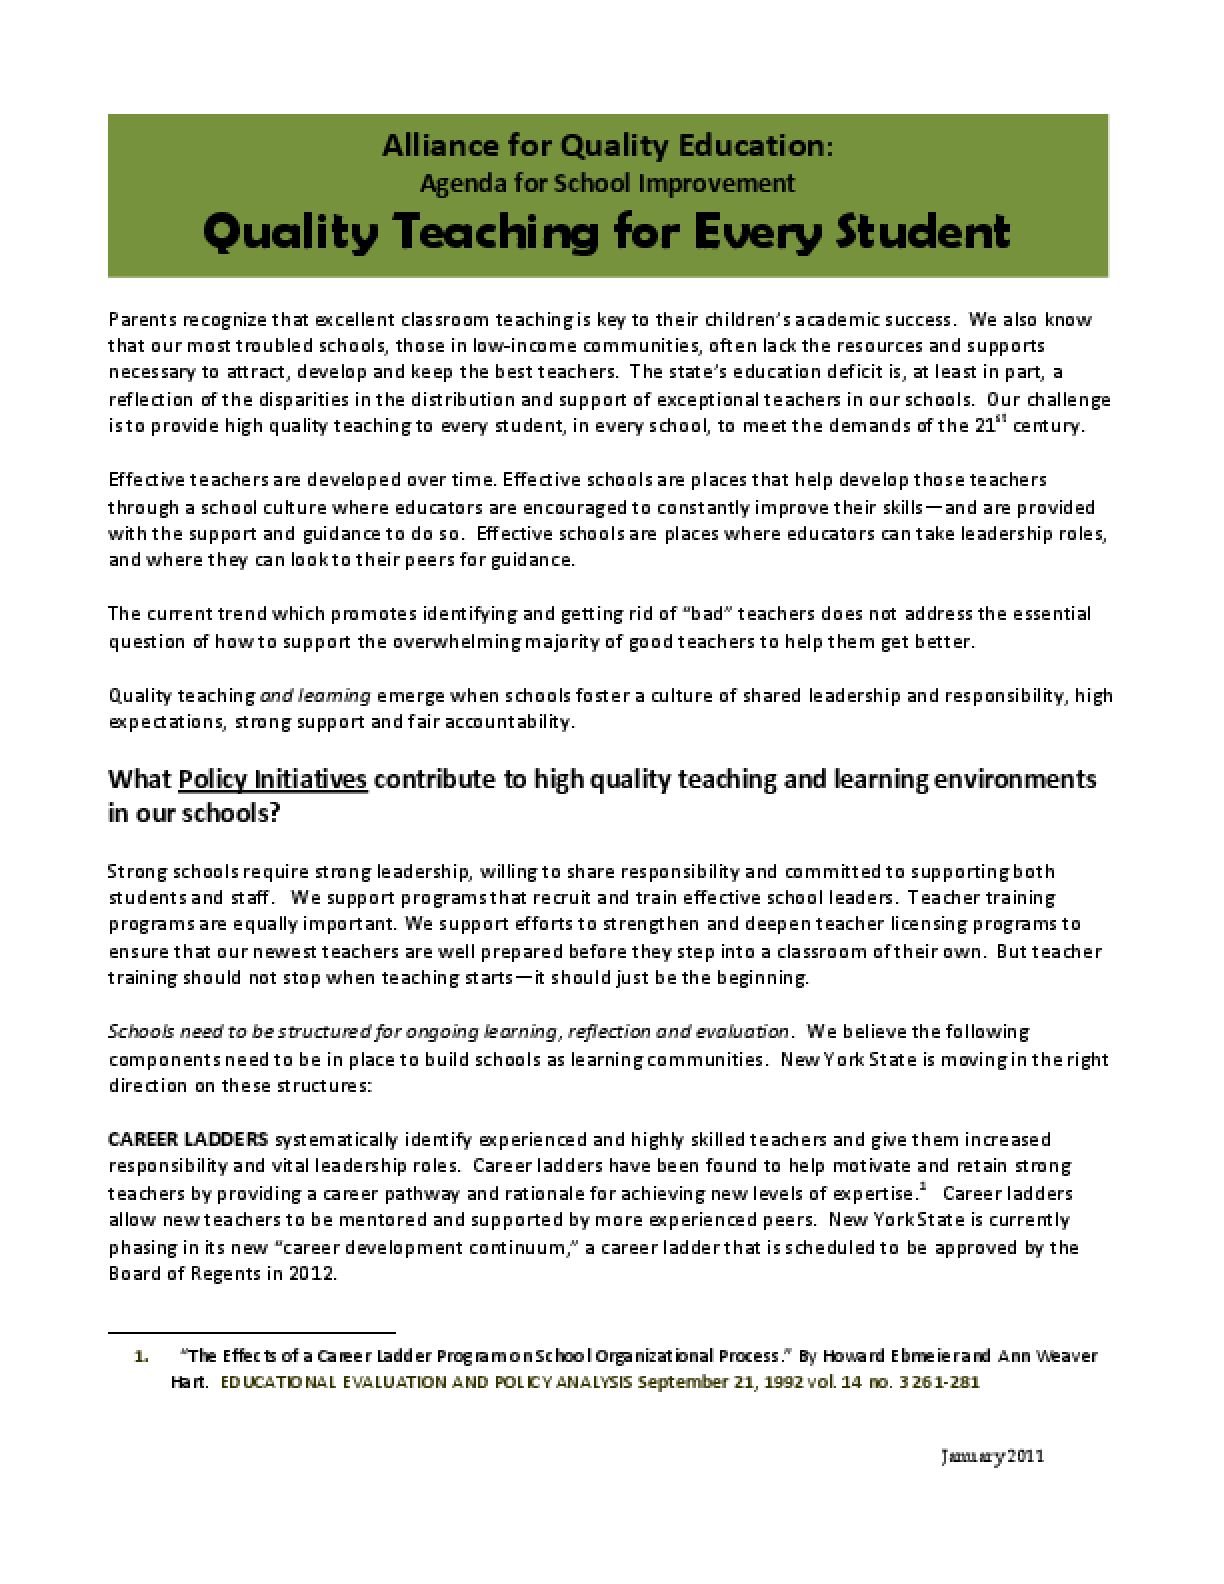 Quality Teaching for Every Student